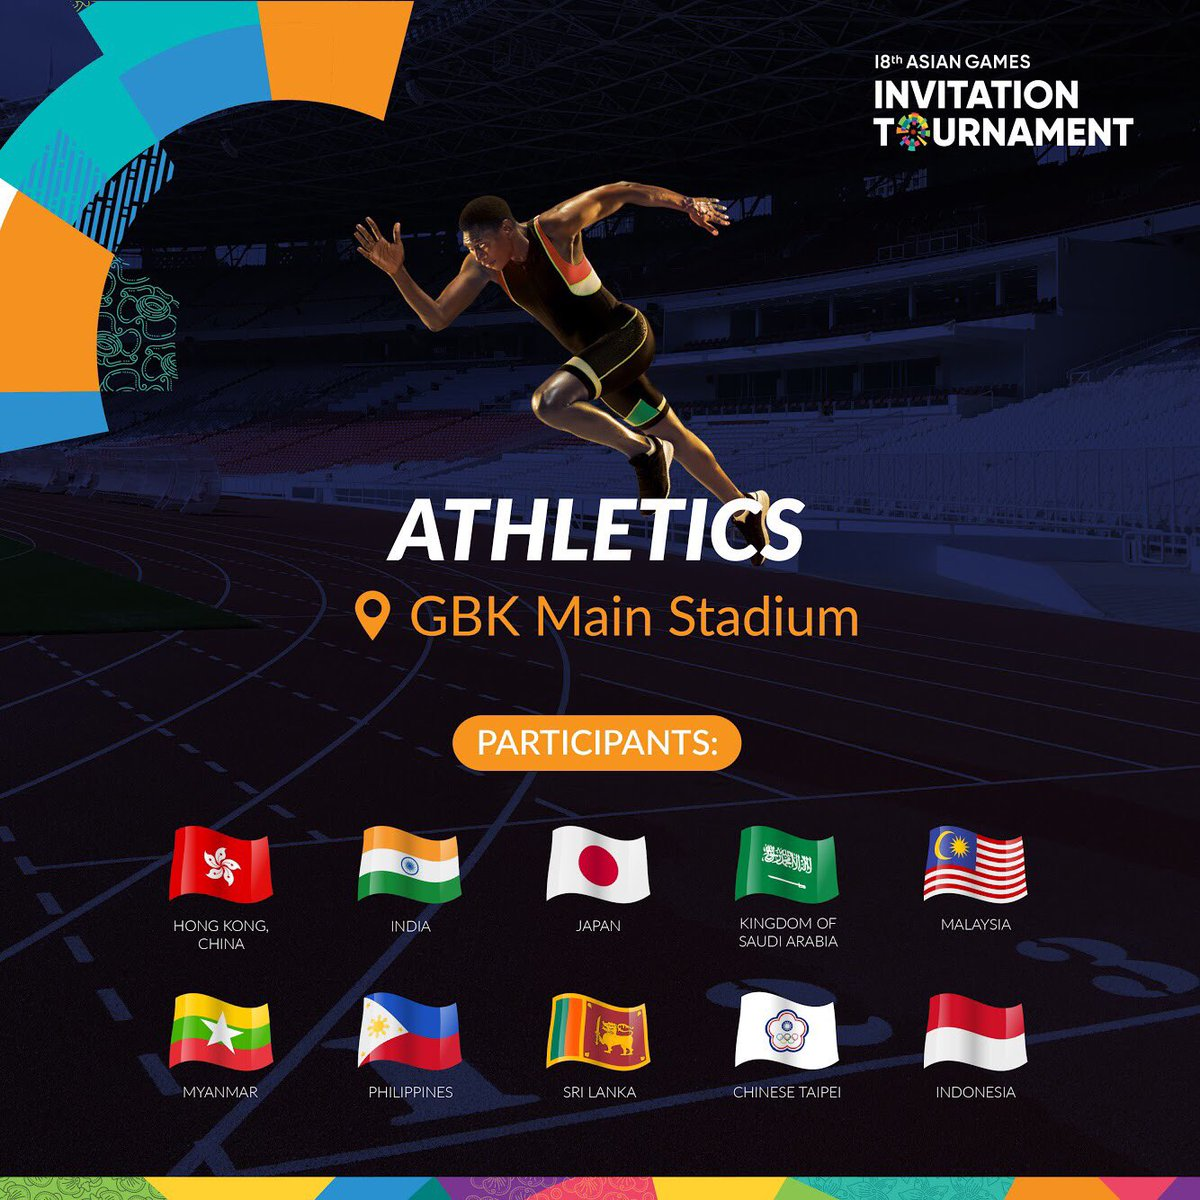 Asian games 2018 on twitter lets sprint to gbk main stadium and asian games 2018 on twitter lets sprint to gbk main stadium and watch the asiangames2018 invitation tournament athletics get your tickets on the spot stopboris Choice Image